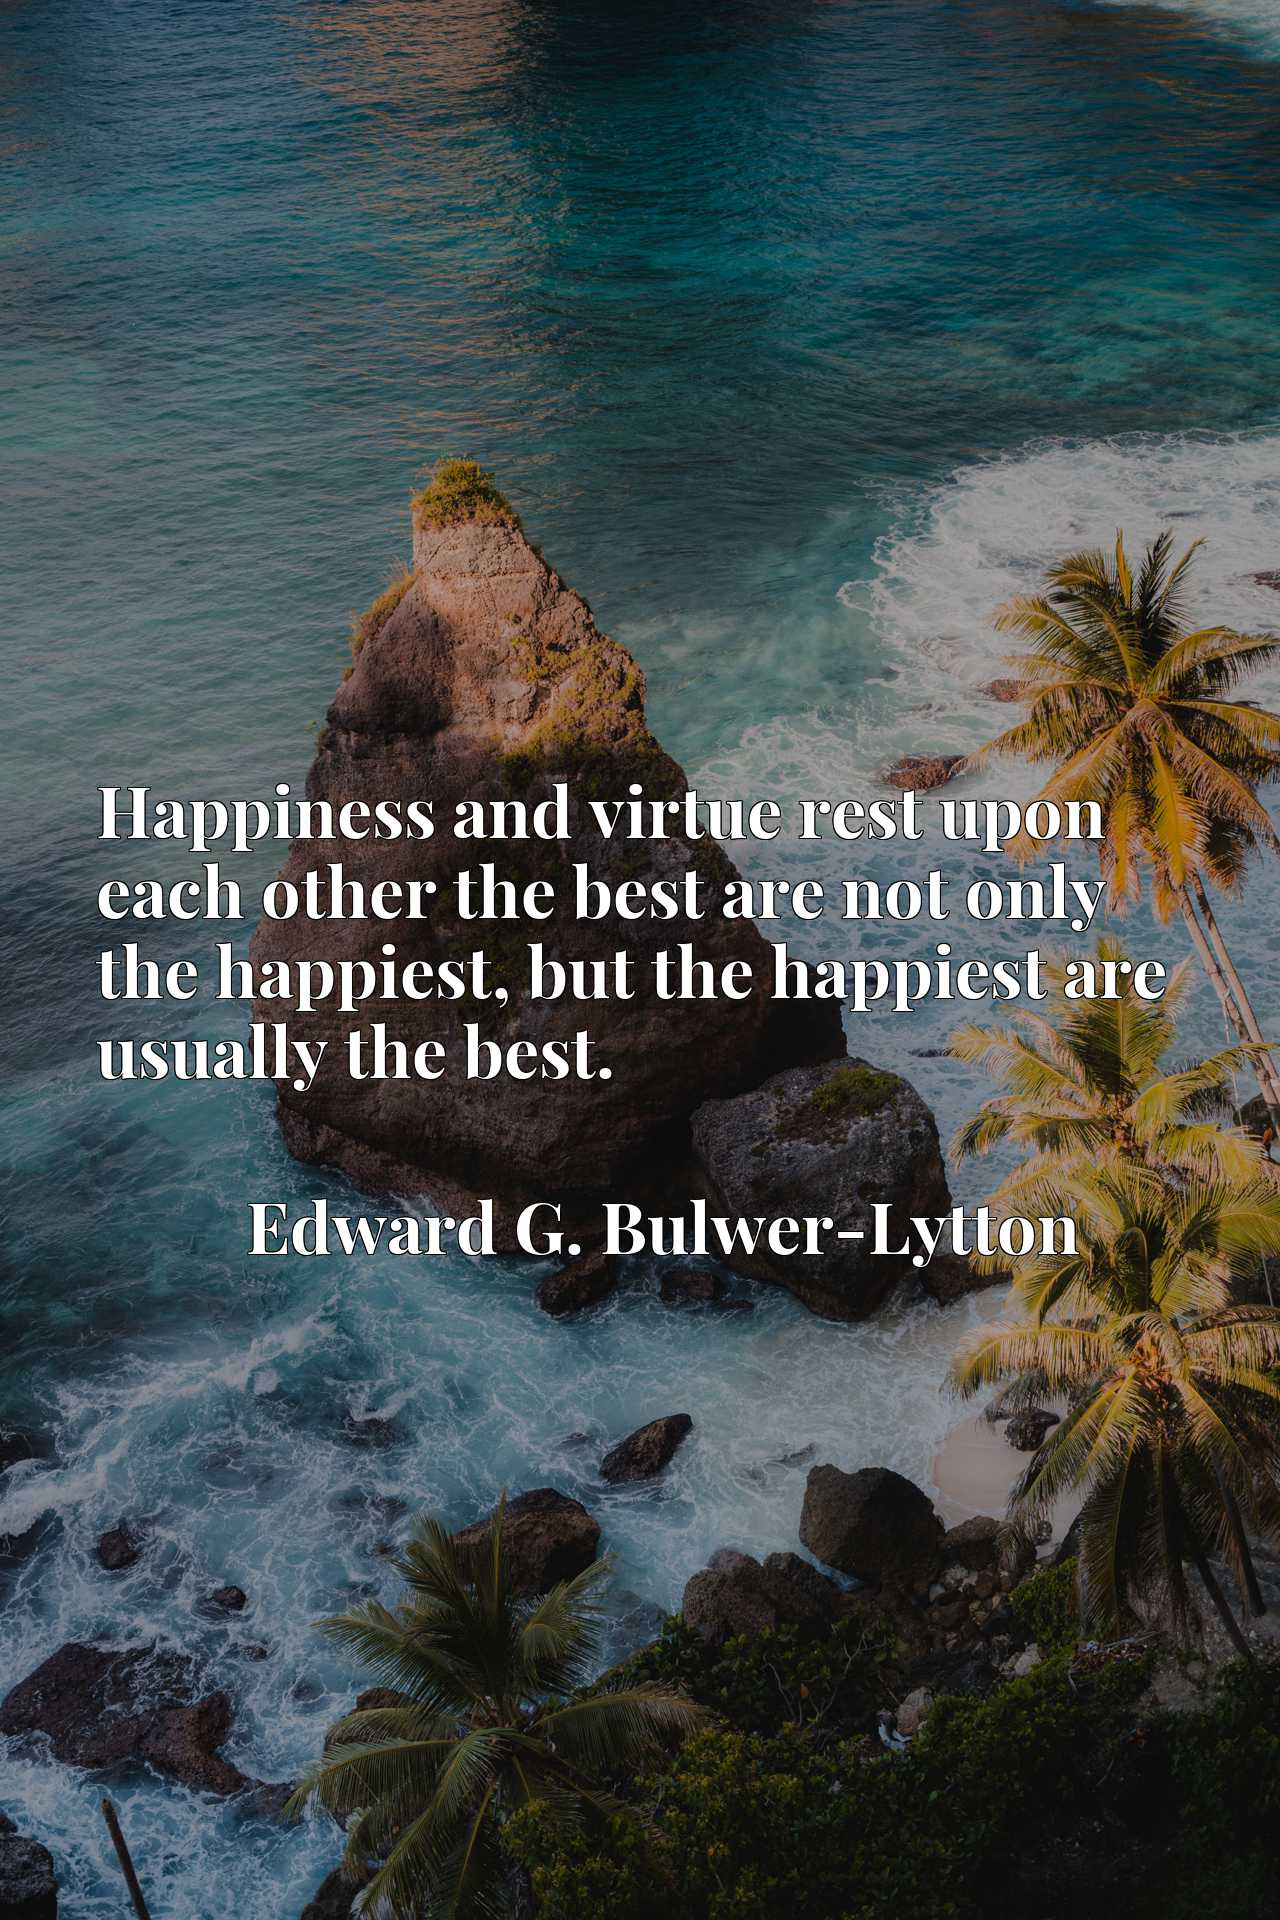 Happiness and virtue rest upon each other the best are not only the happiest, but the happiest are usually the best.